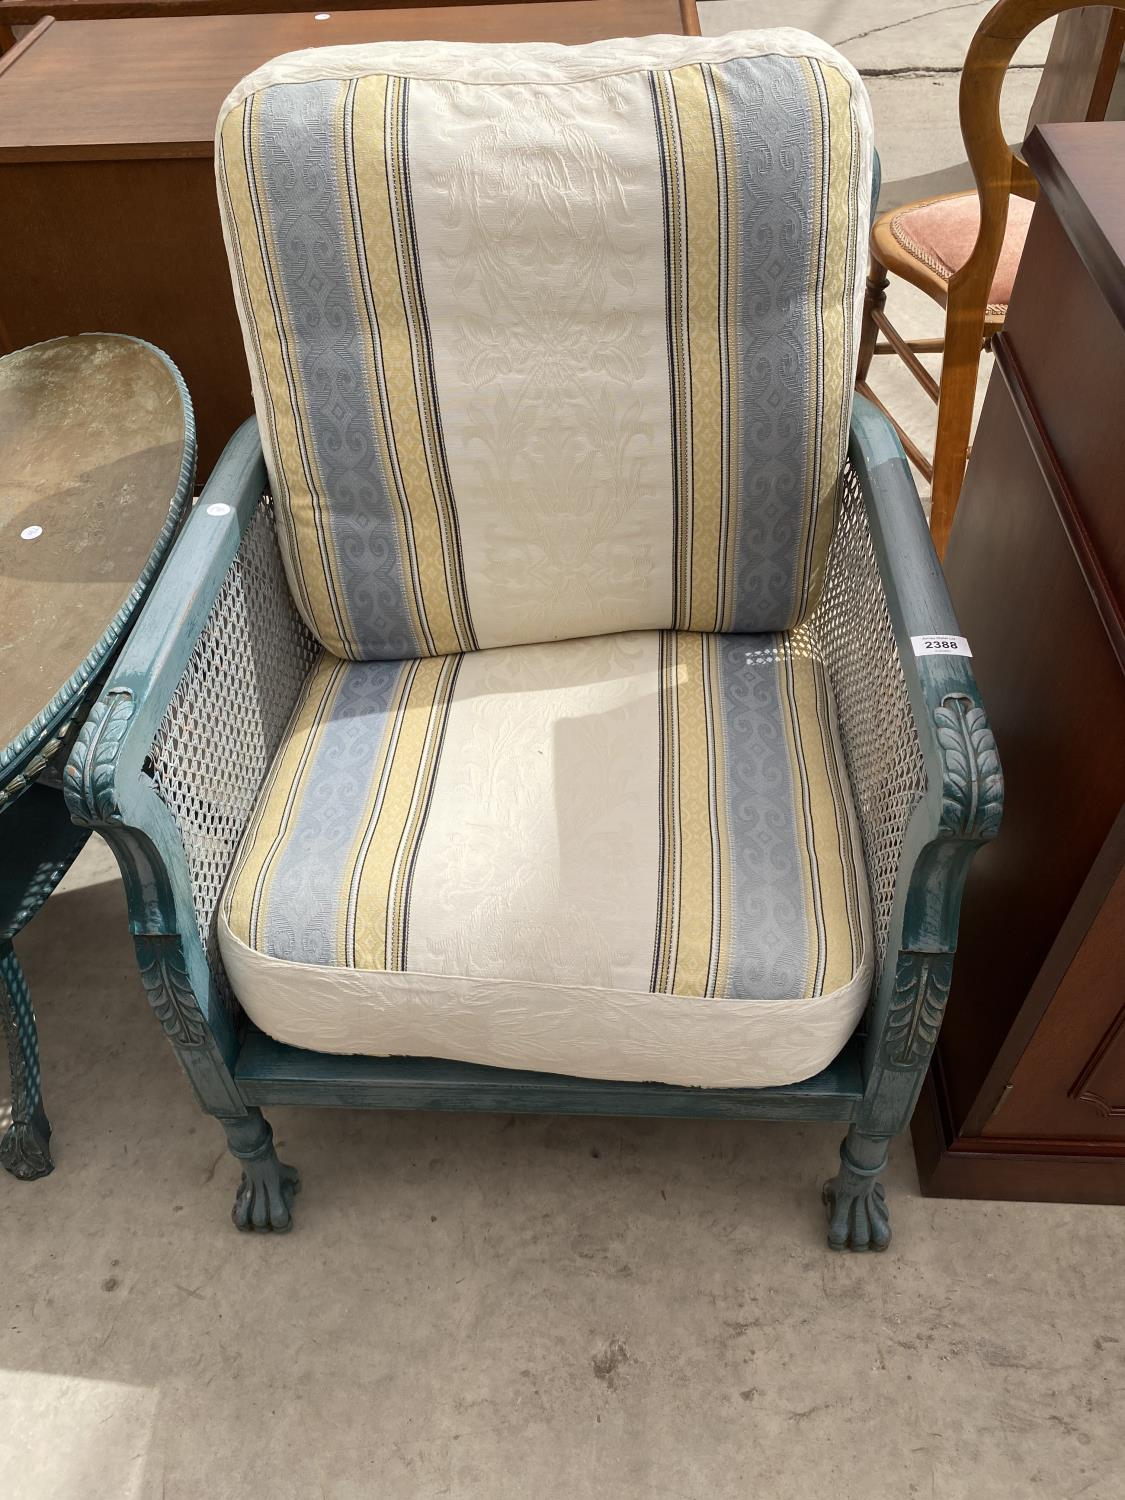 A PAIR OF EARLY 20TH CENTURY BERGERE FIRESIDE CHAIRS ON CLAW FEET, HAVING SHABBY CHIC PAINTING, - Image 2 of 6